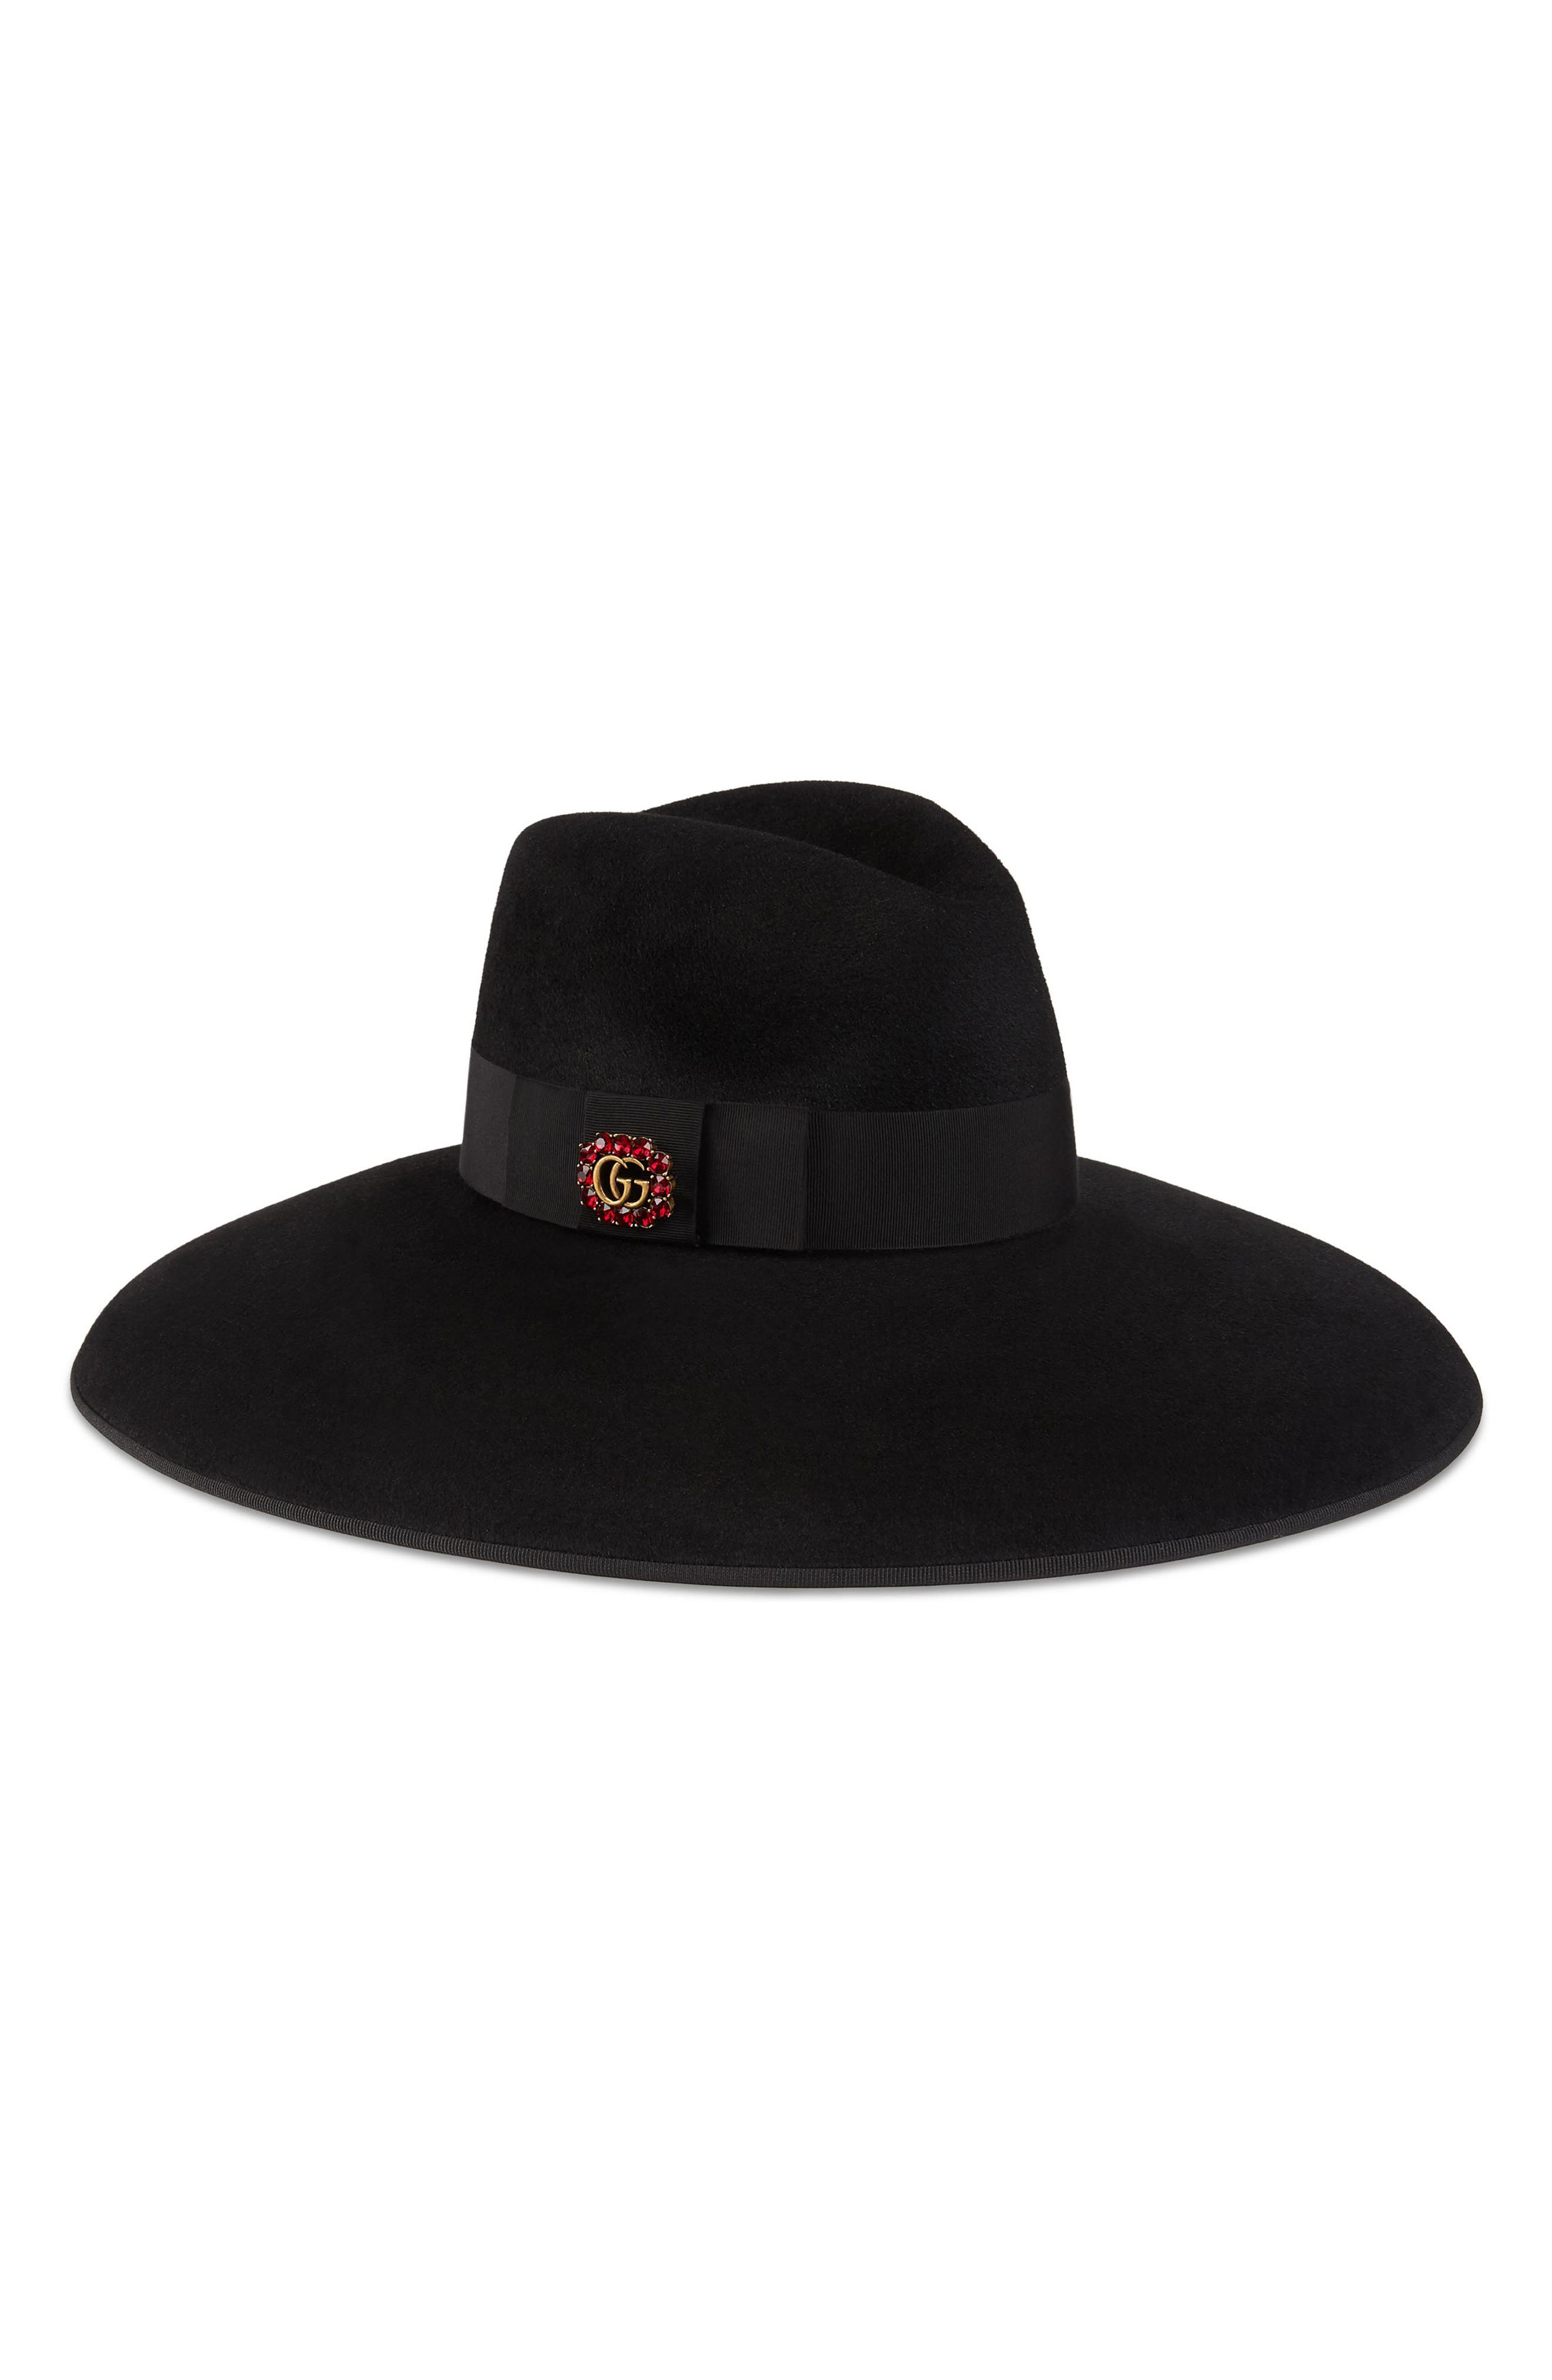 Alternate Image 1 Selected - Gucci Fur Felt Wide Brim Hat